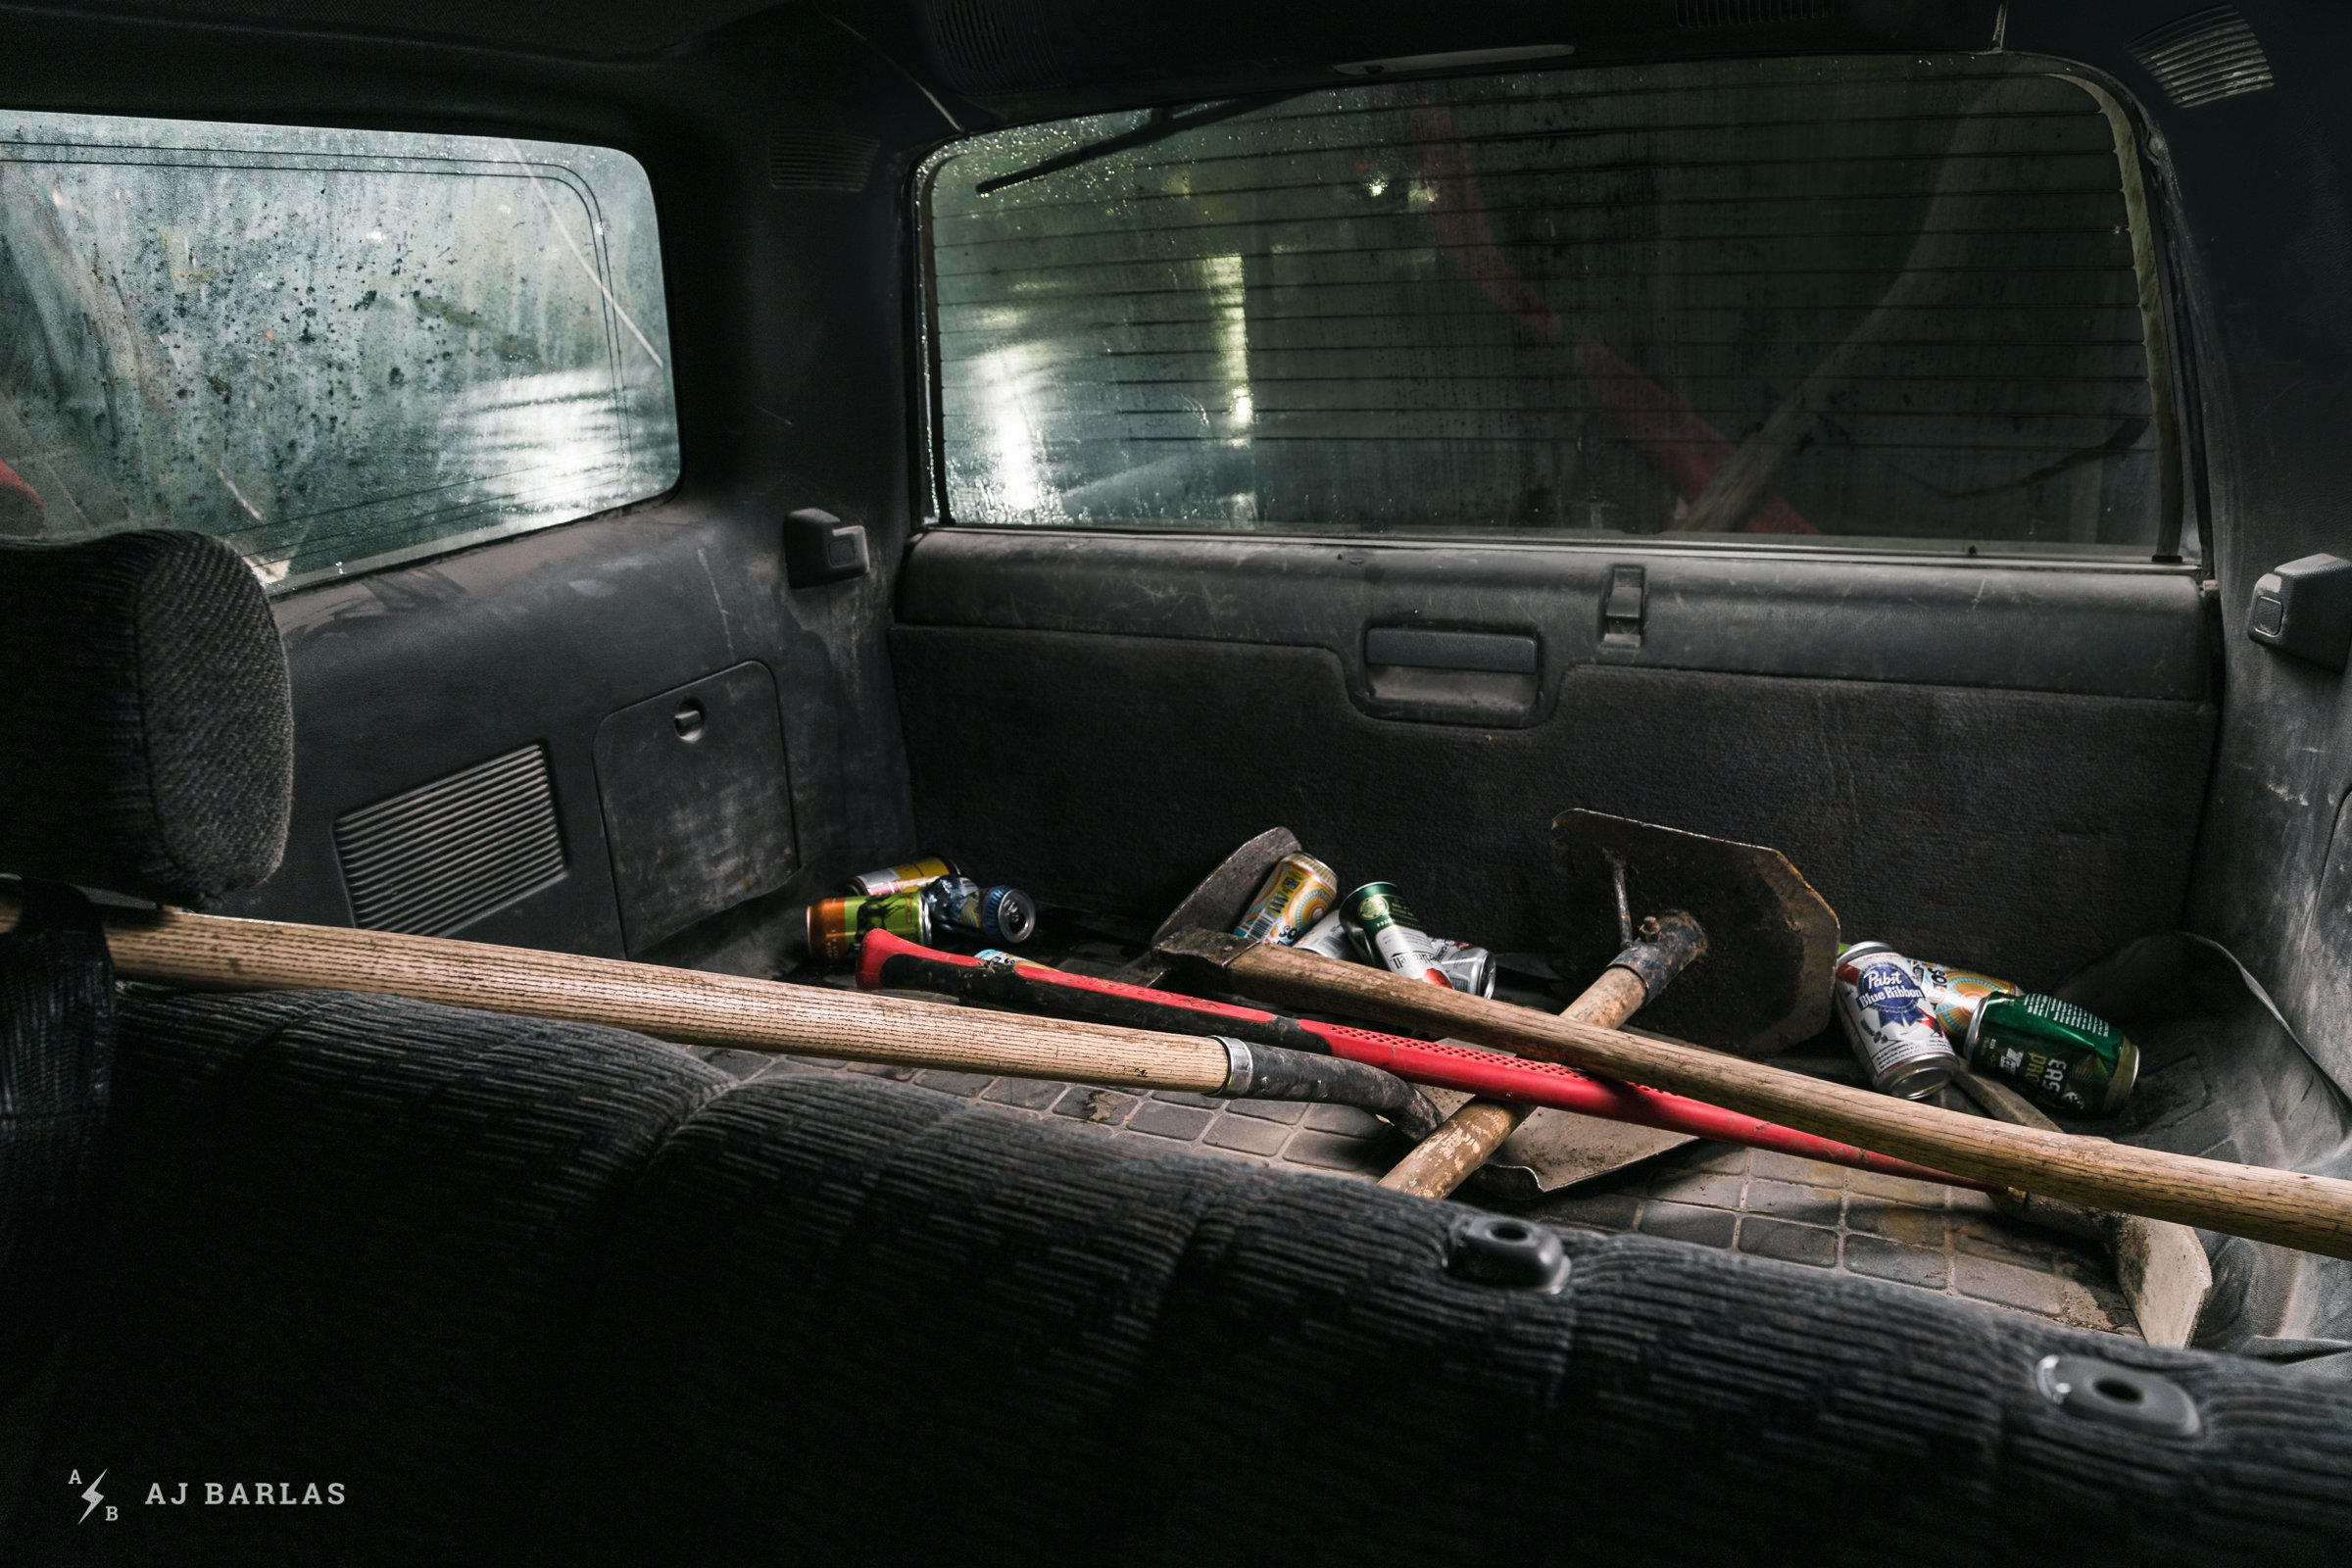 Owen Foster's Toyota 4Runner with tools living in the back